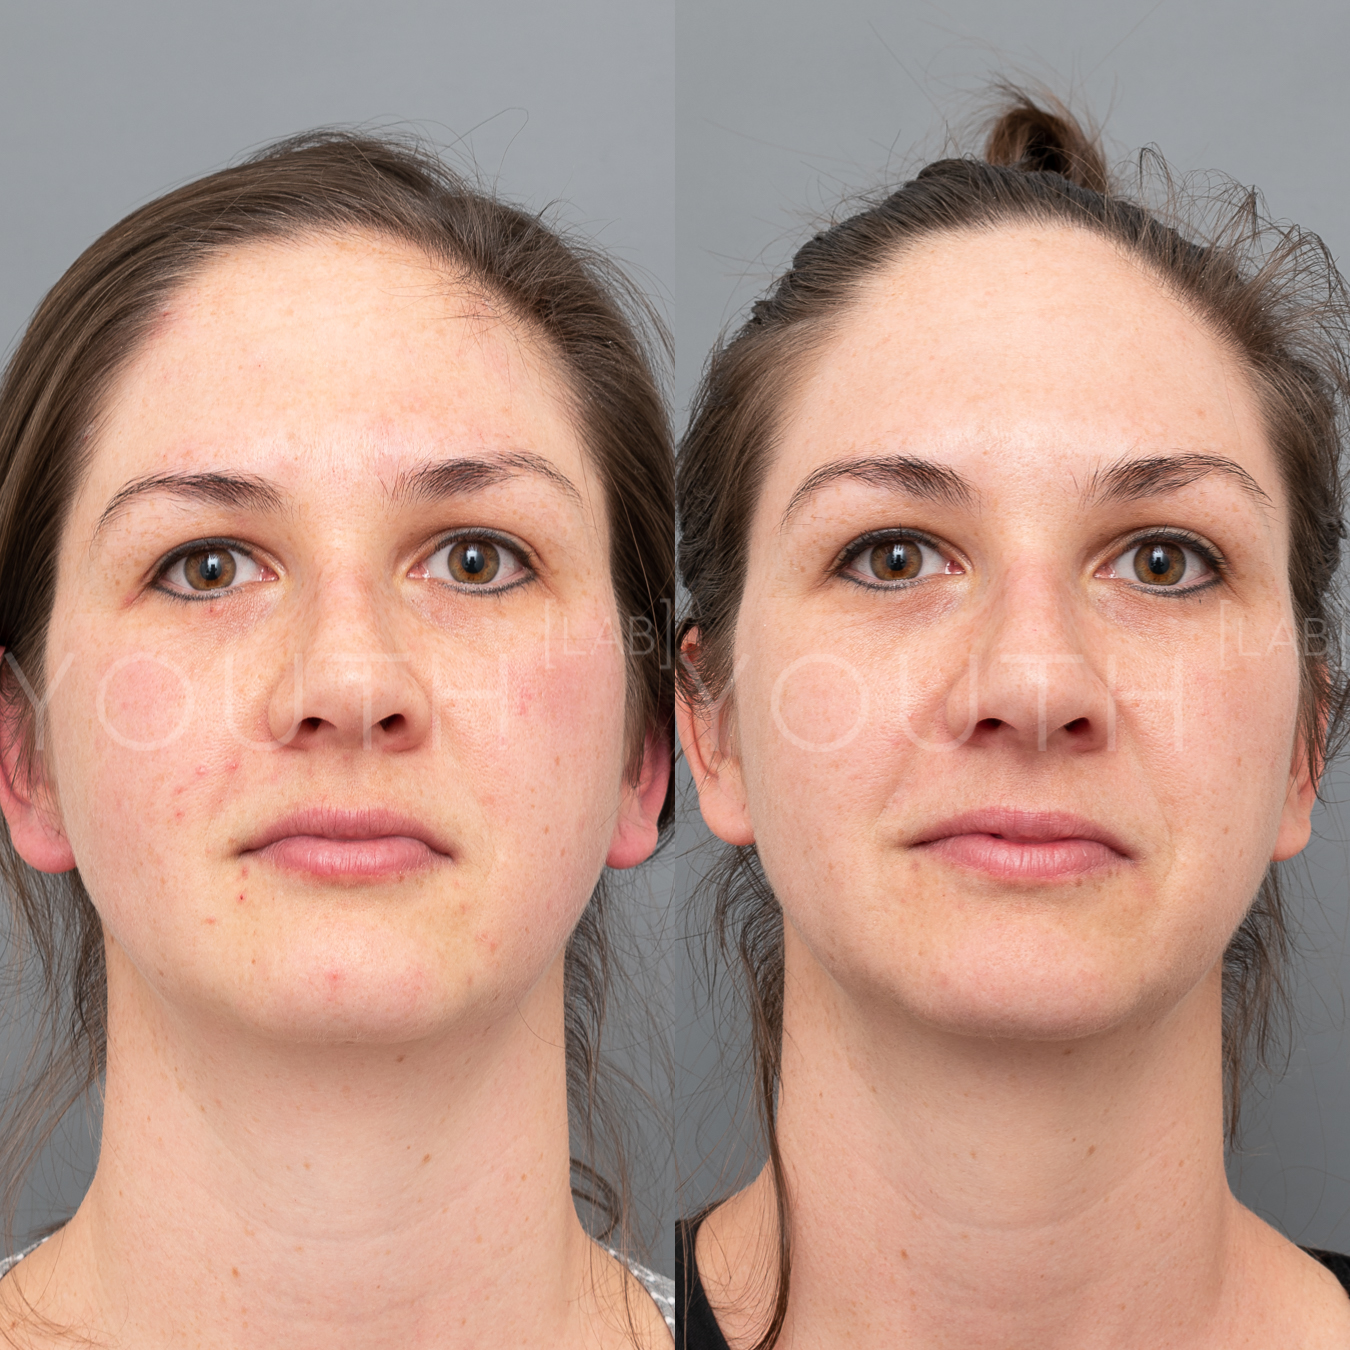 Treatment:  3 x BBL Photorejuvenation + 3 x Hydrafacials  Targeting:  Sun Damage + Congestion  Photo Filter:  No Filter  Result:  Reduction in congestion and sun damage, resulting in lighter, smoother skin tone.